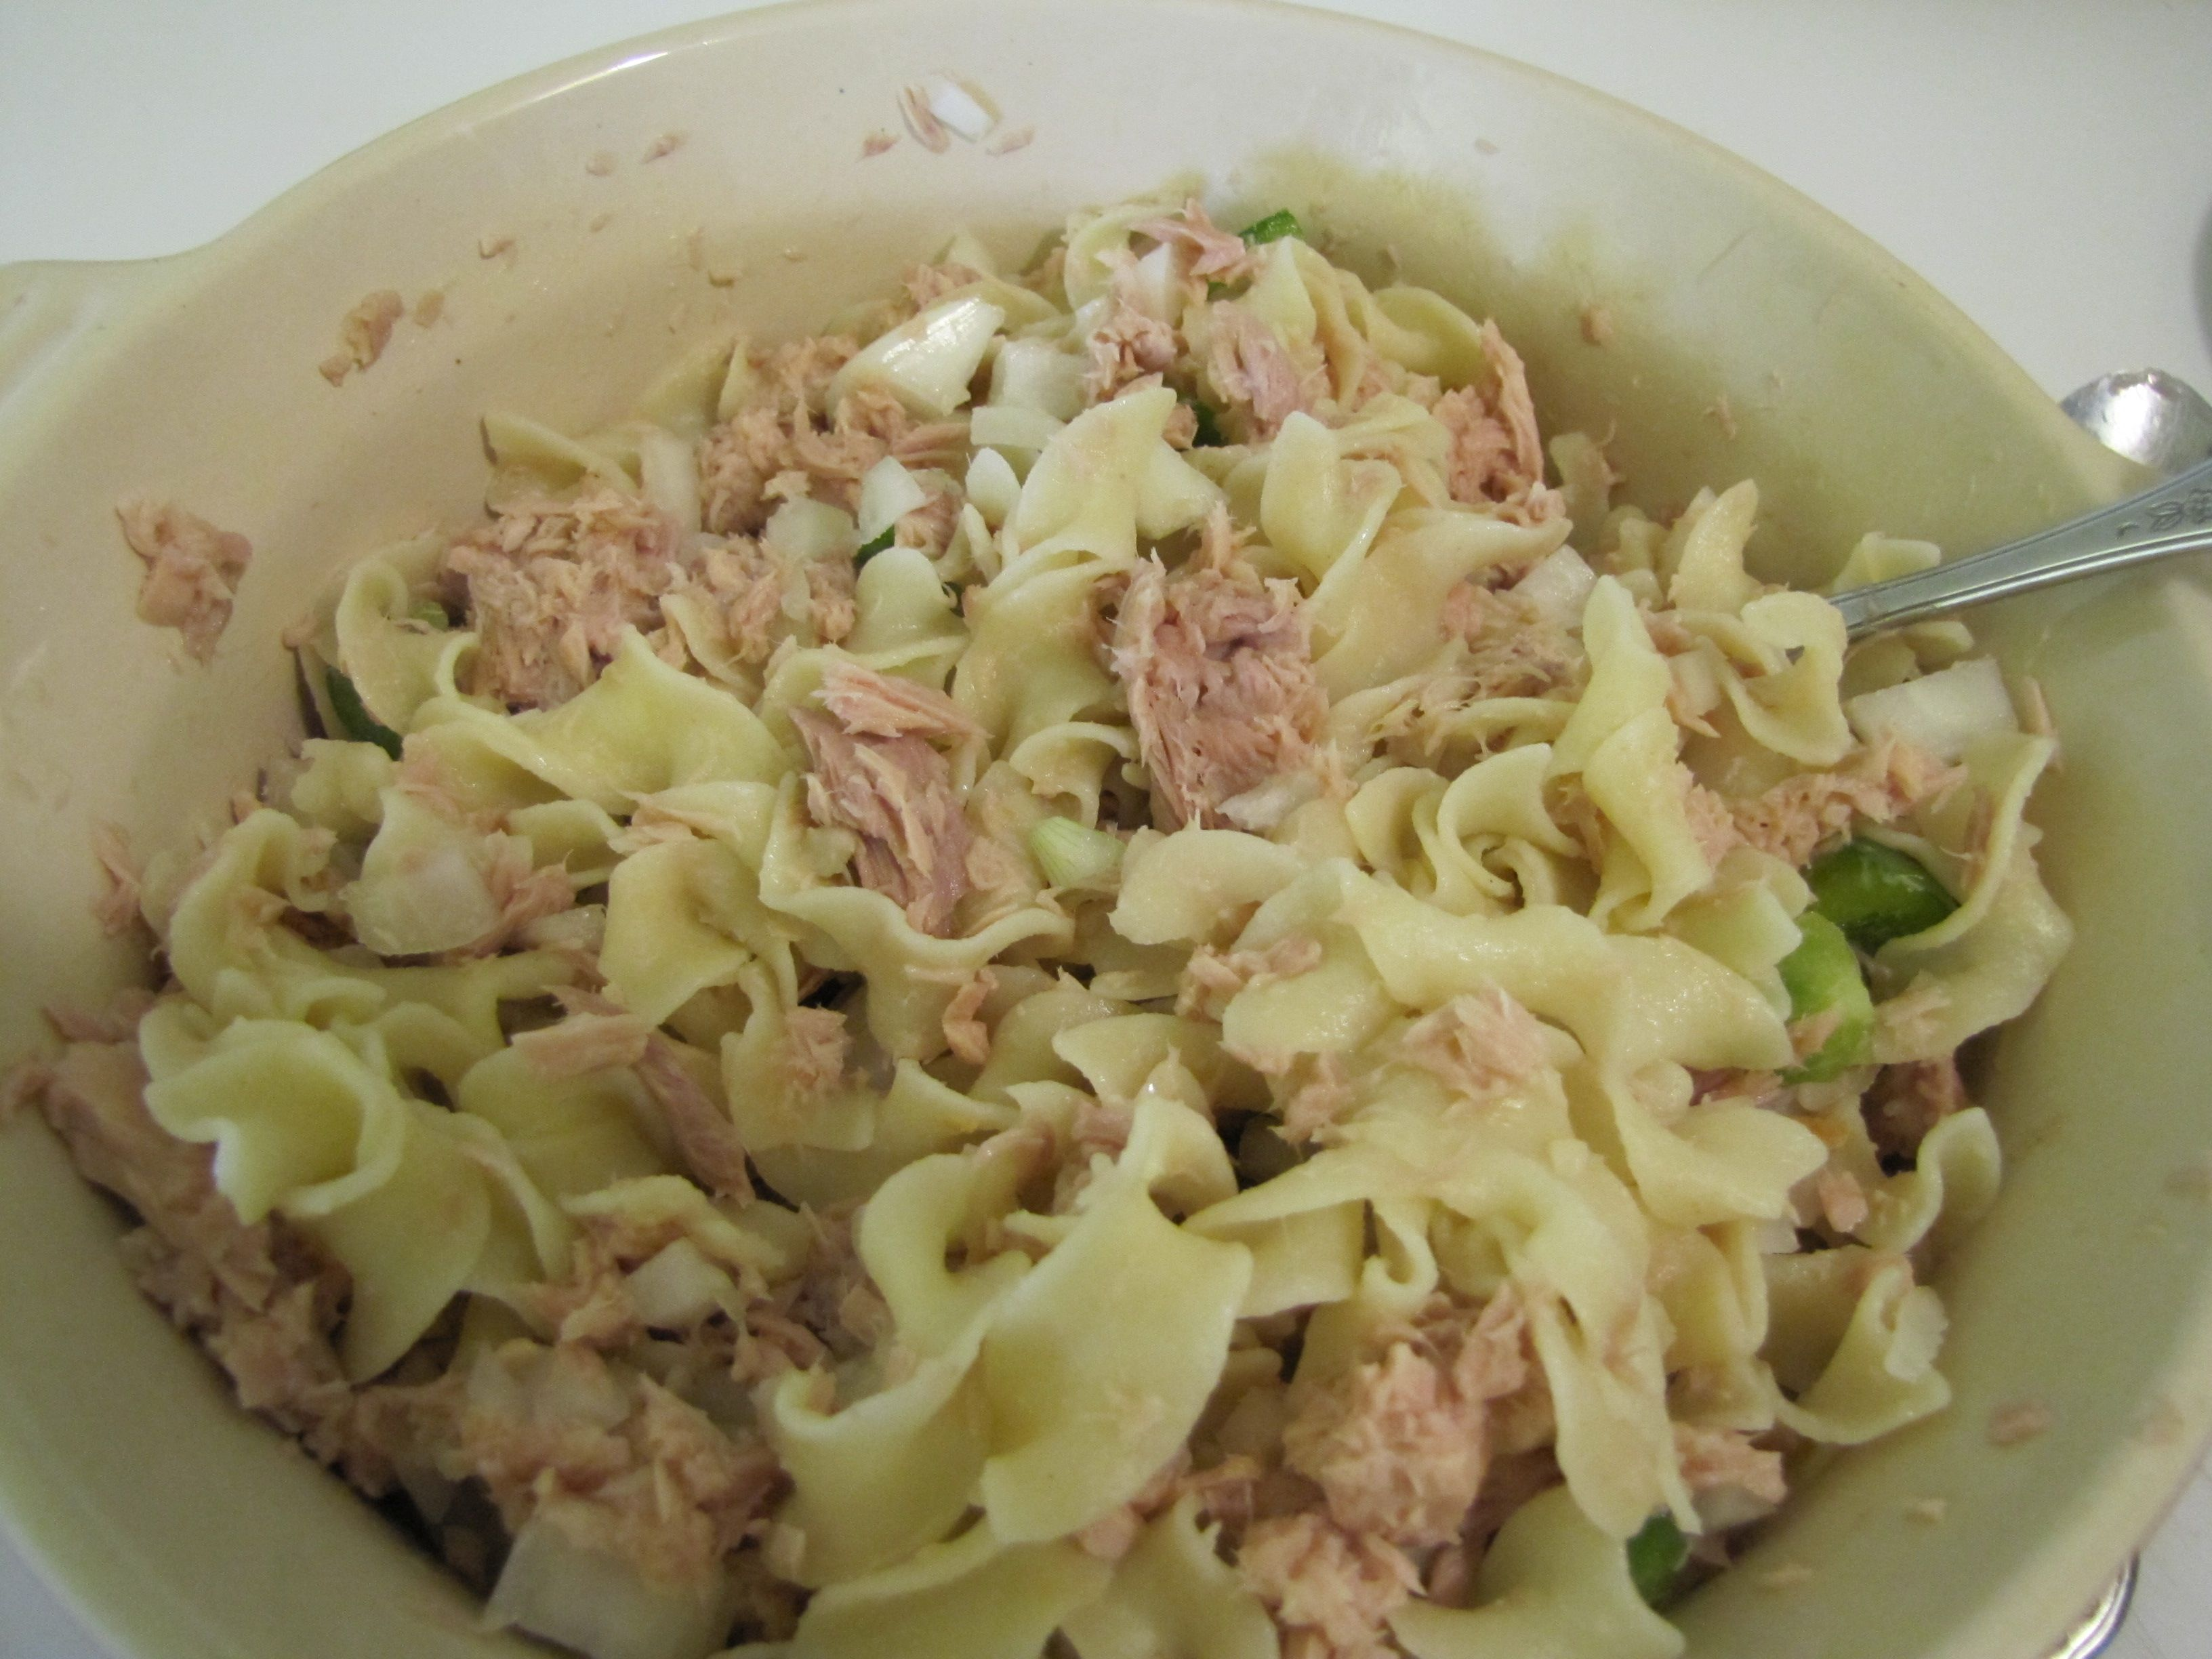 tuna casserole recipes with cream of mushroom | add the